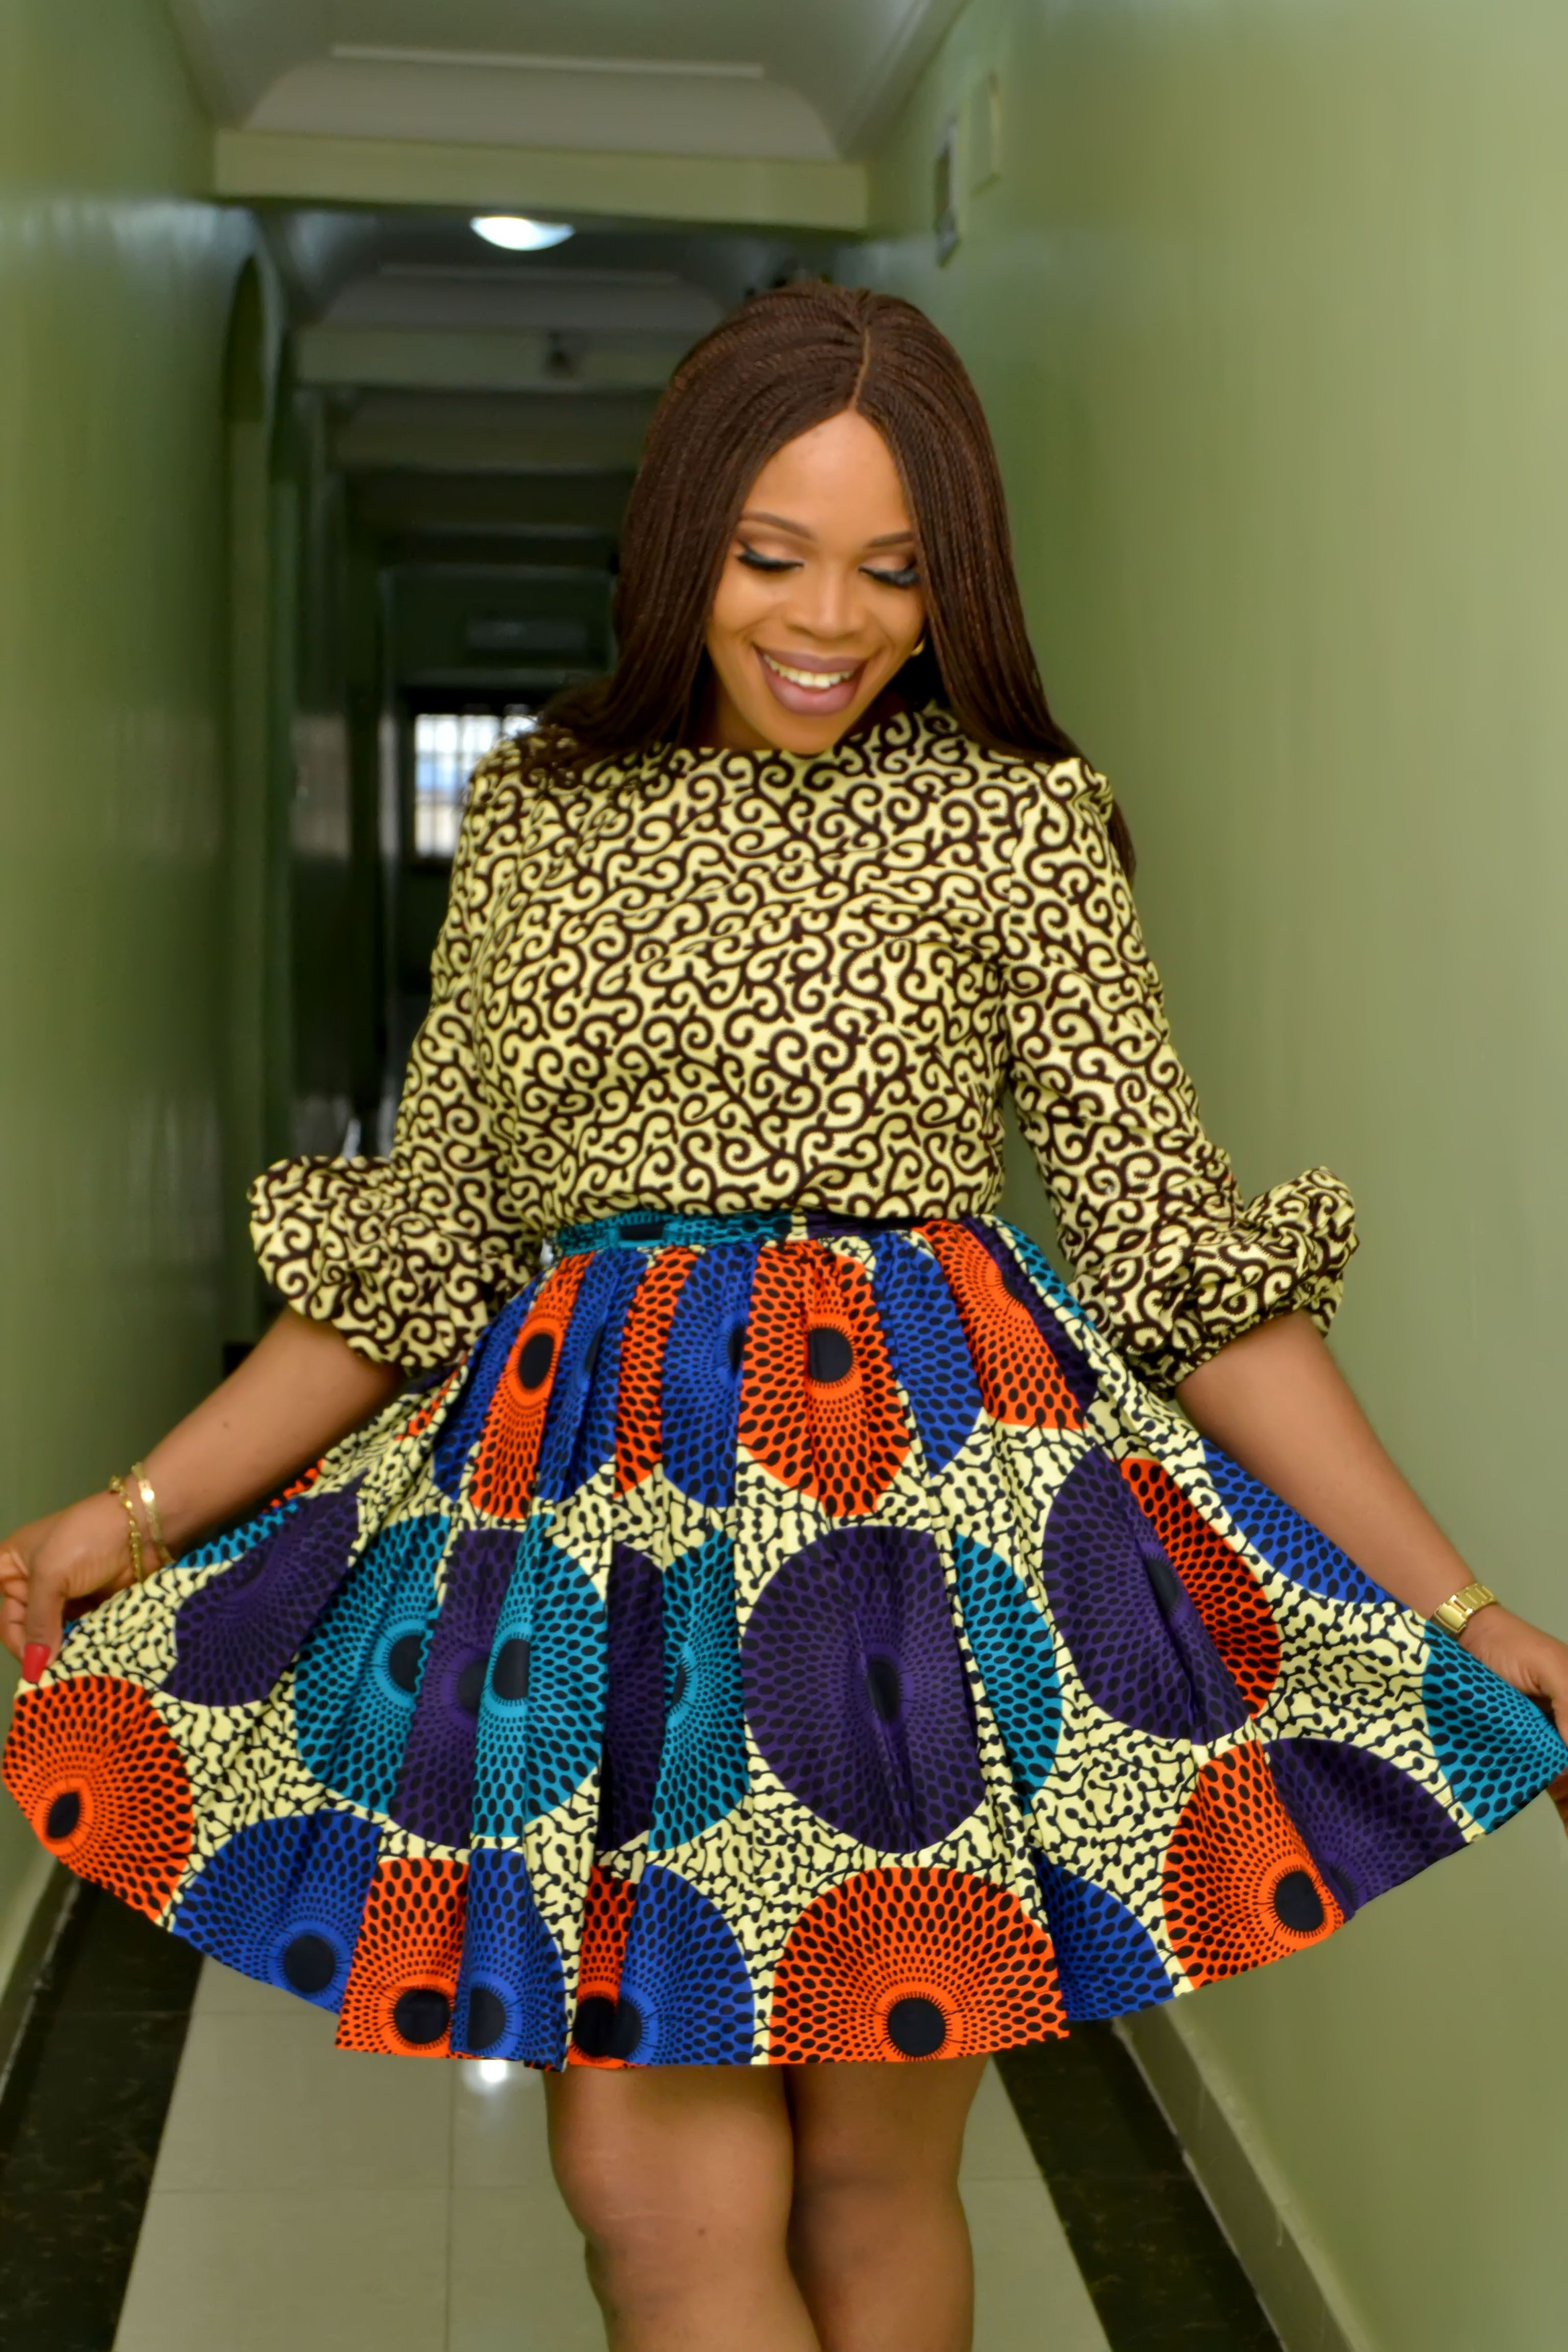 f1d1eaeb38 Product Information Our Adesuwa outfit is a set of Puff Sleeves Top and a  neatly Hand